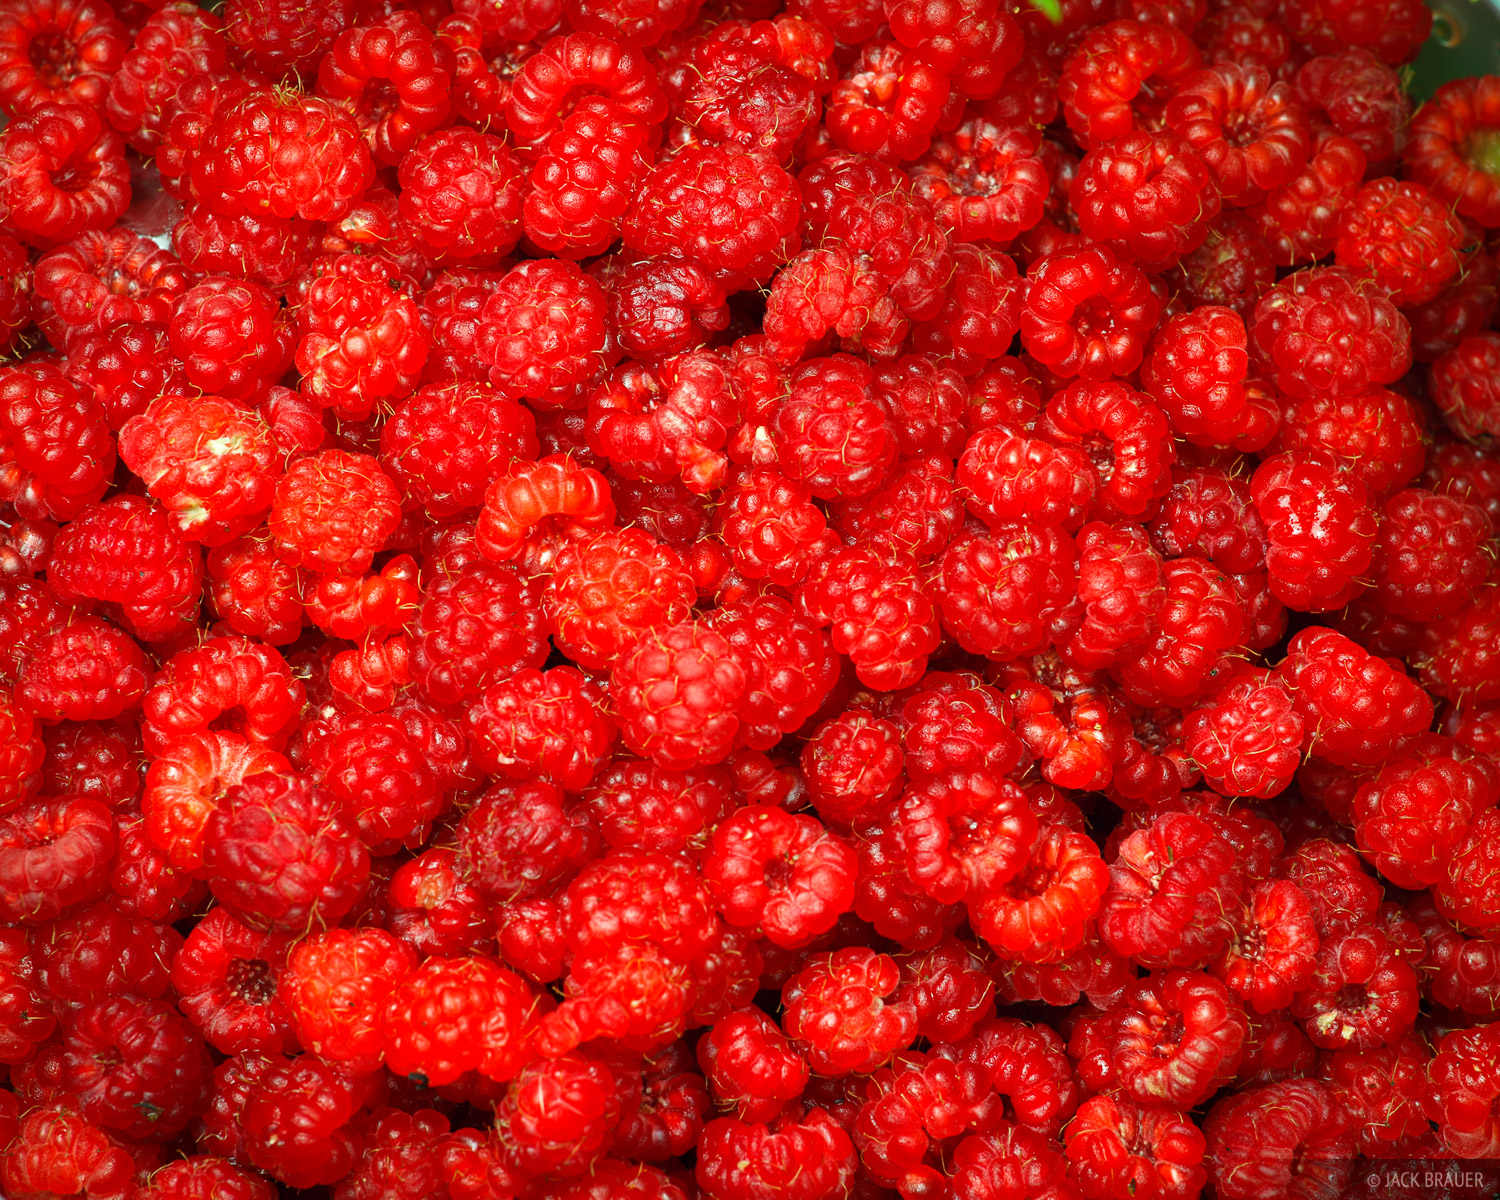 A bowl full of delicious wild raspberries. When we came upon these bushes full of raspberries we dropped our backpacks and picked...